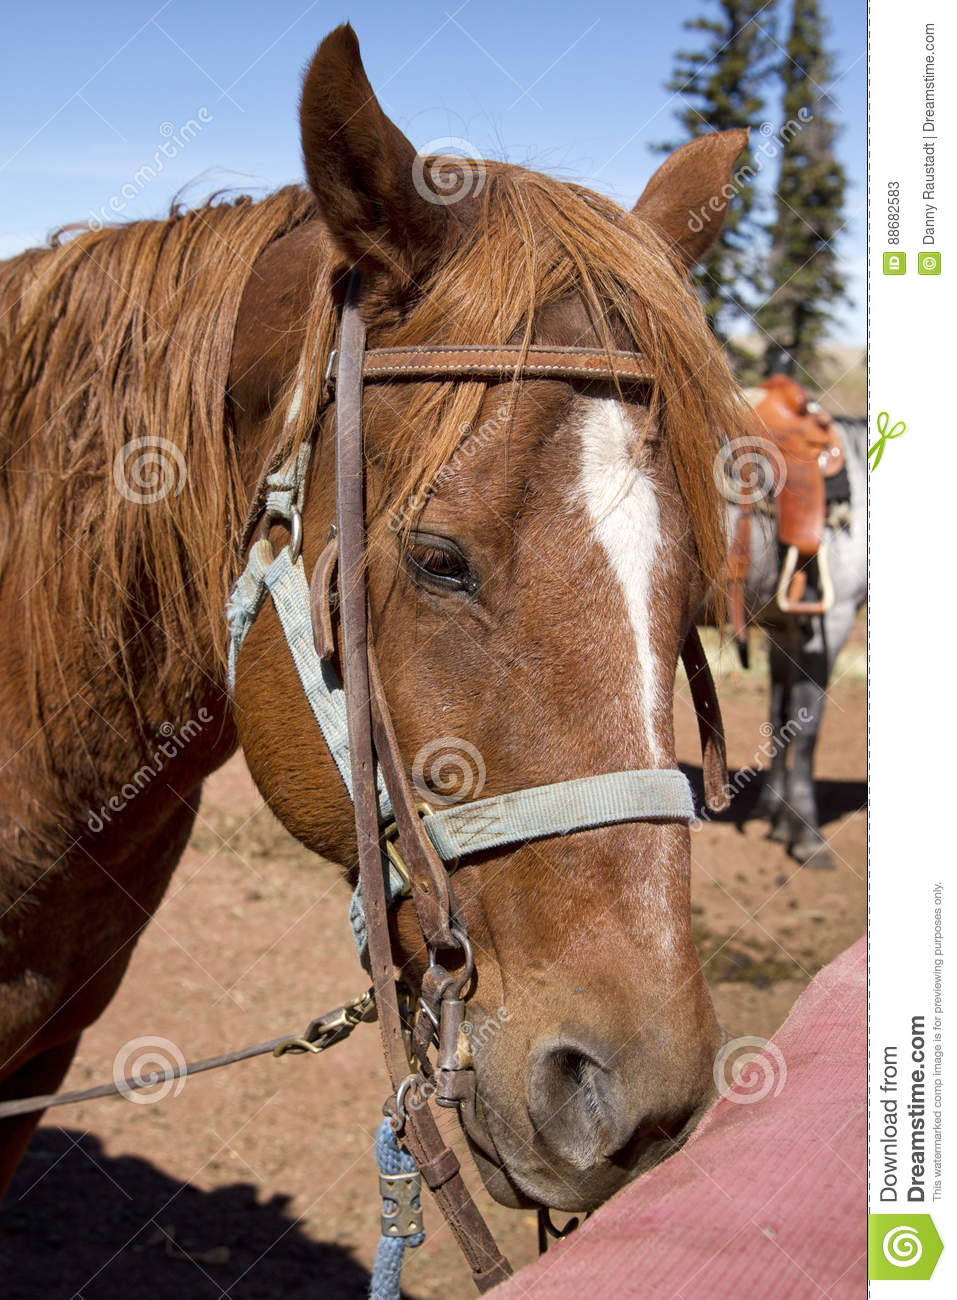 Western Trail Riding Horse At Riding Stable Stock Image Image Of Paying Mountains 88682583